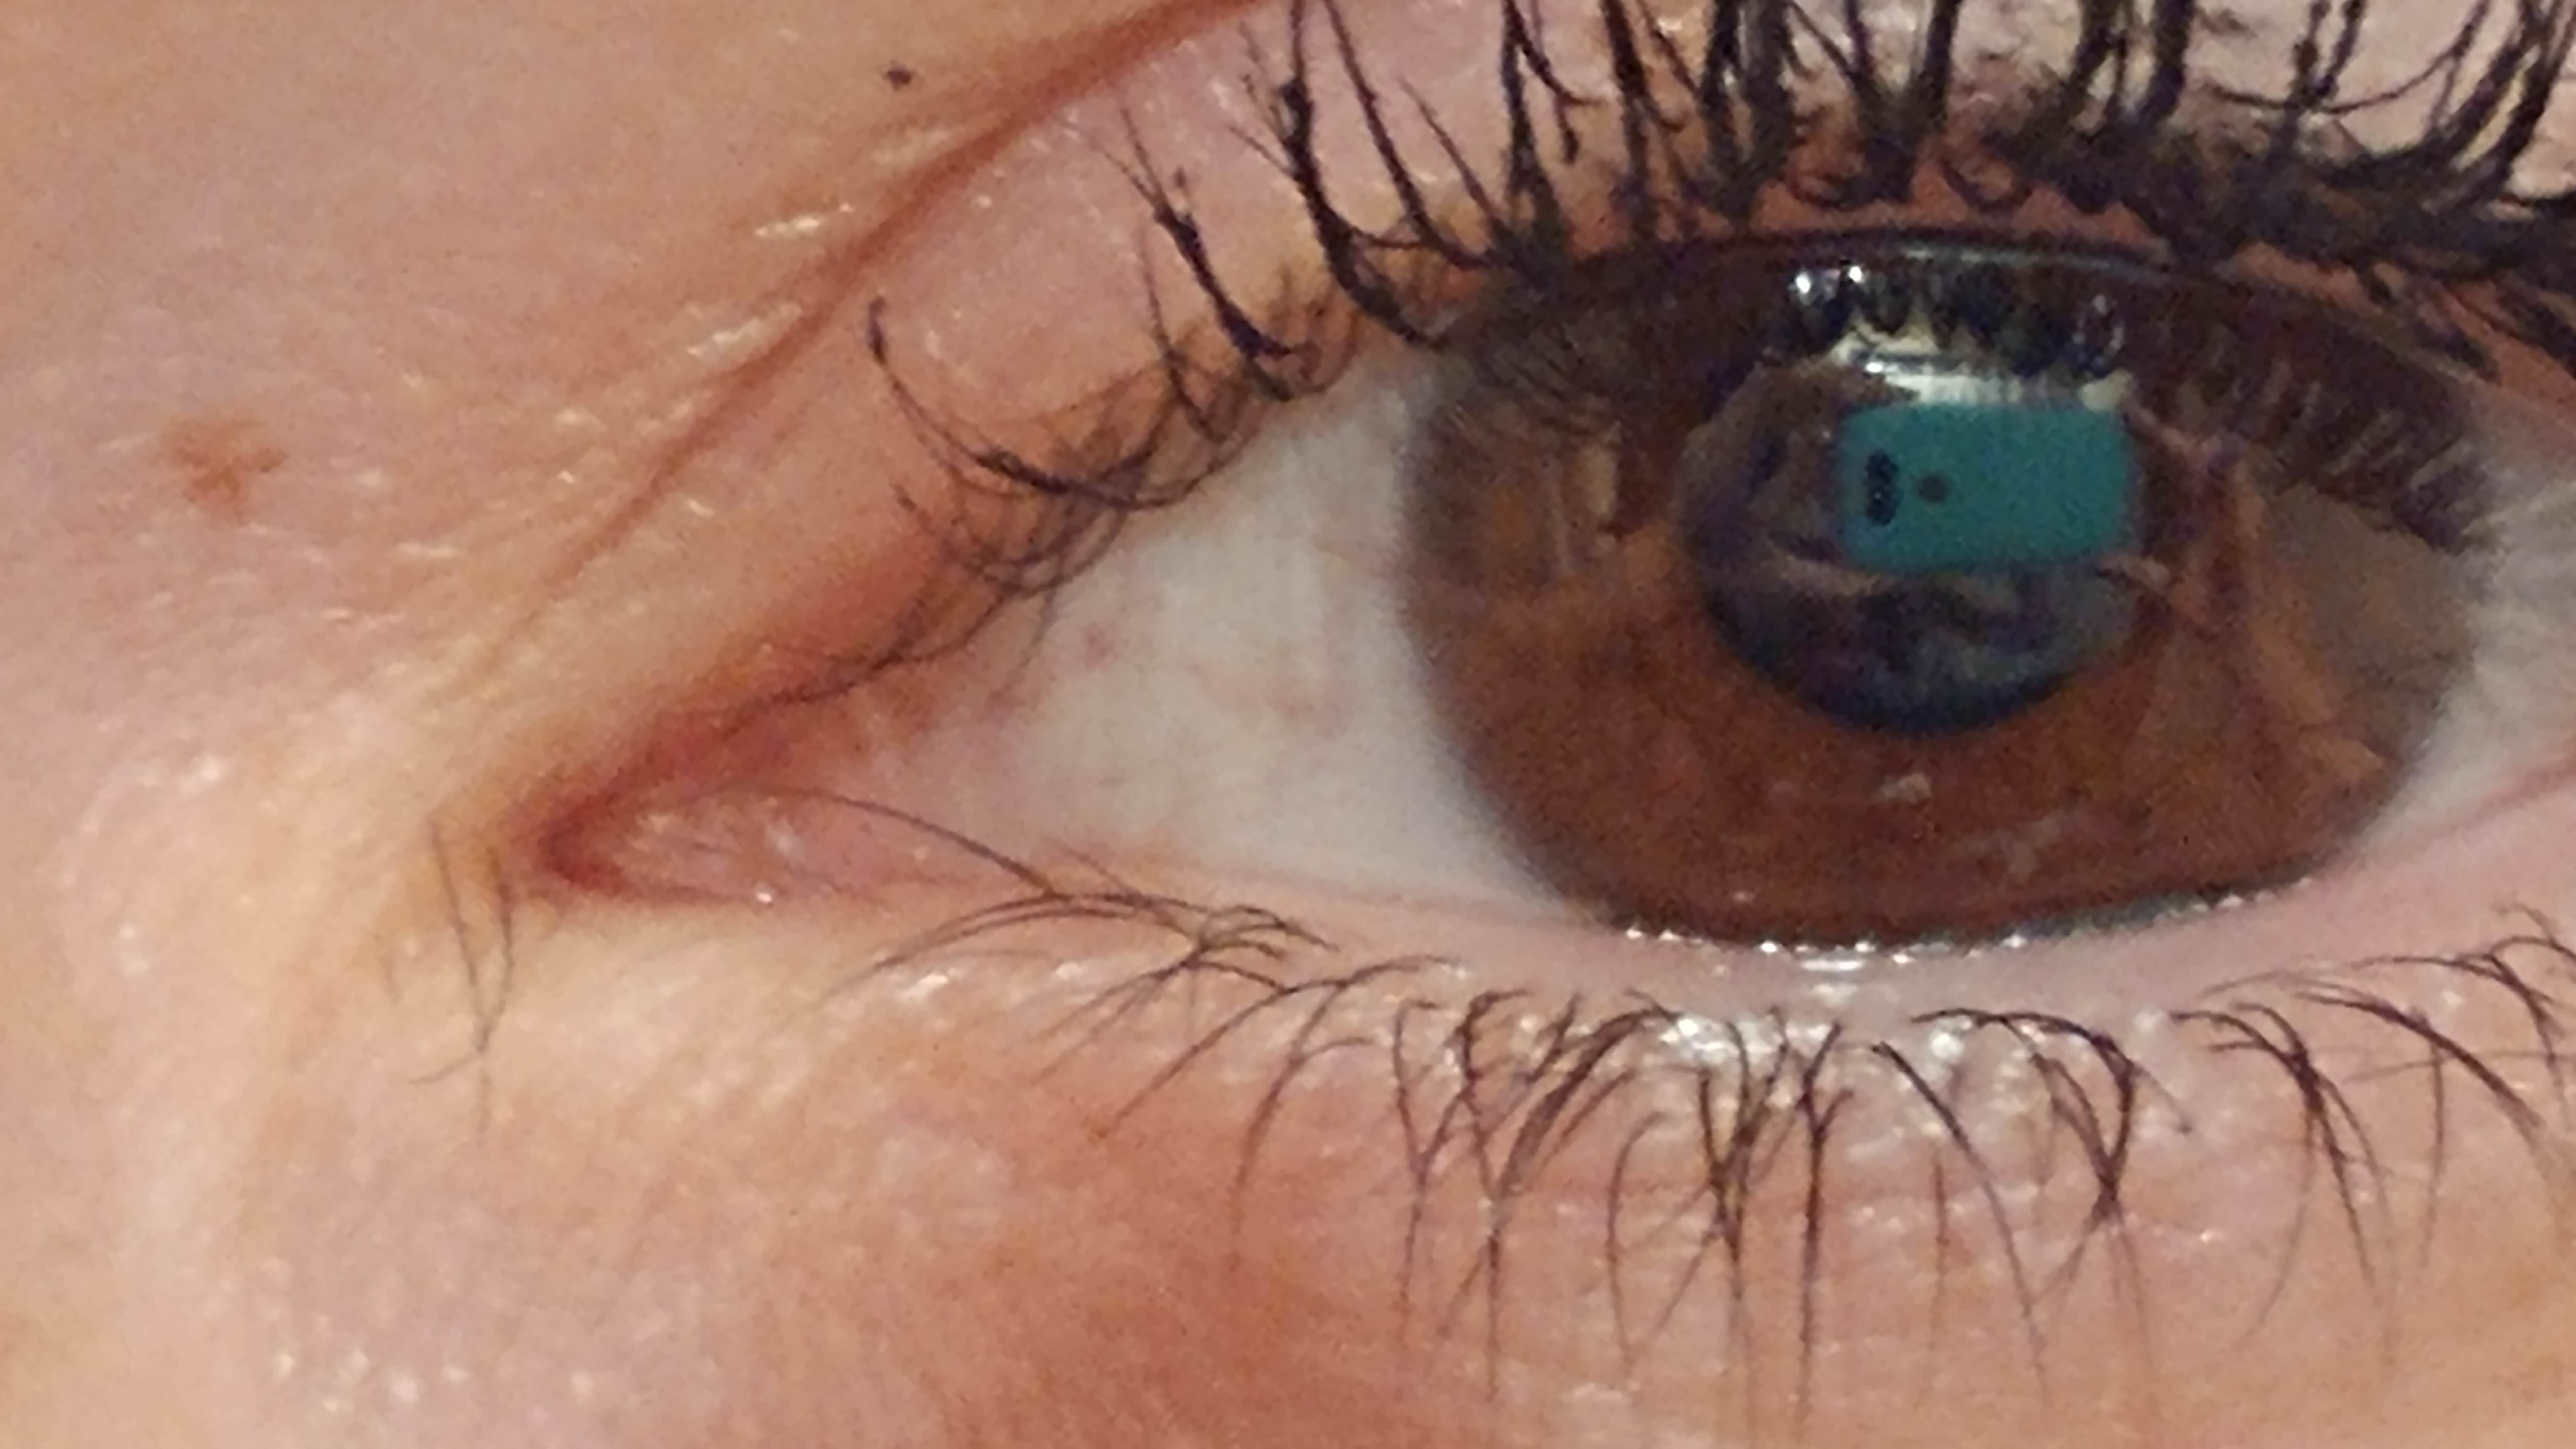 I have eyelashes growing in the inner corner of my eyes ...